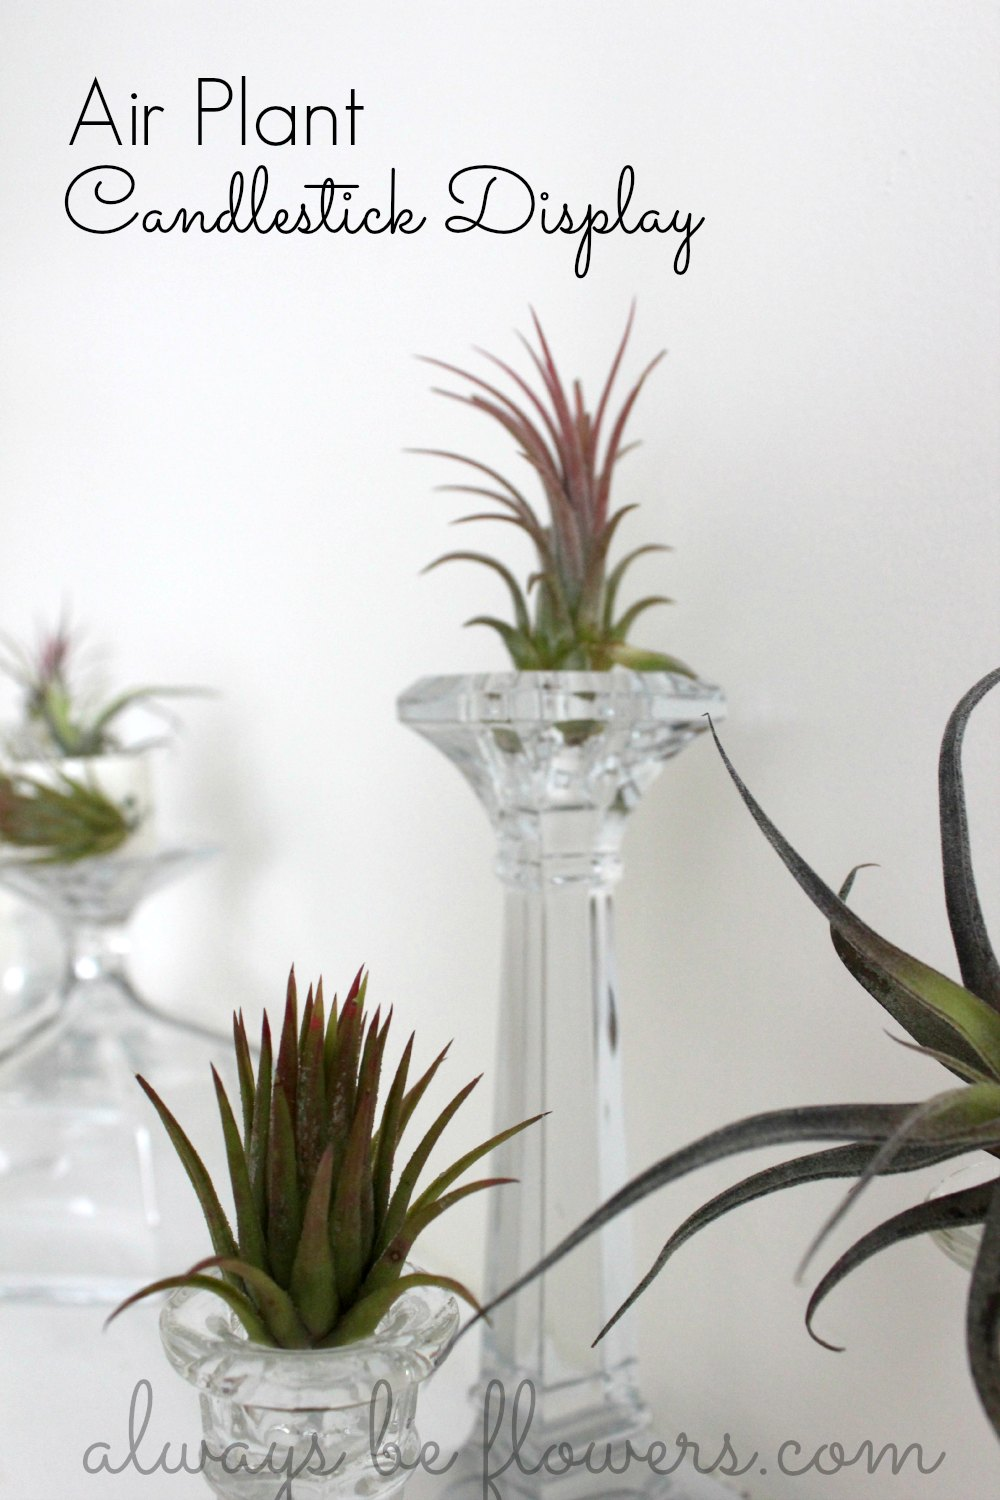 Air plants have fascinating texture.